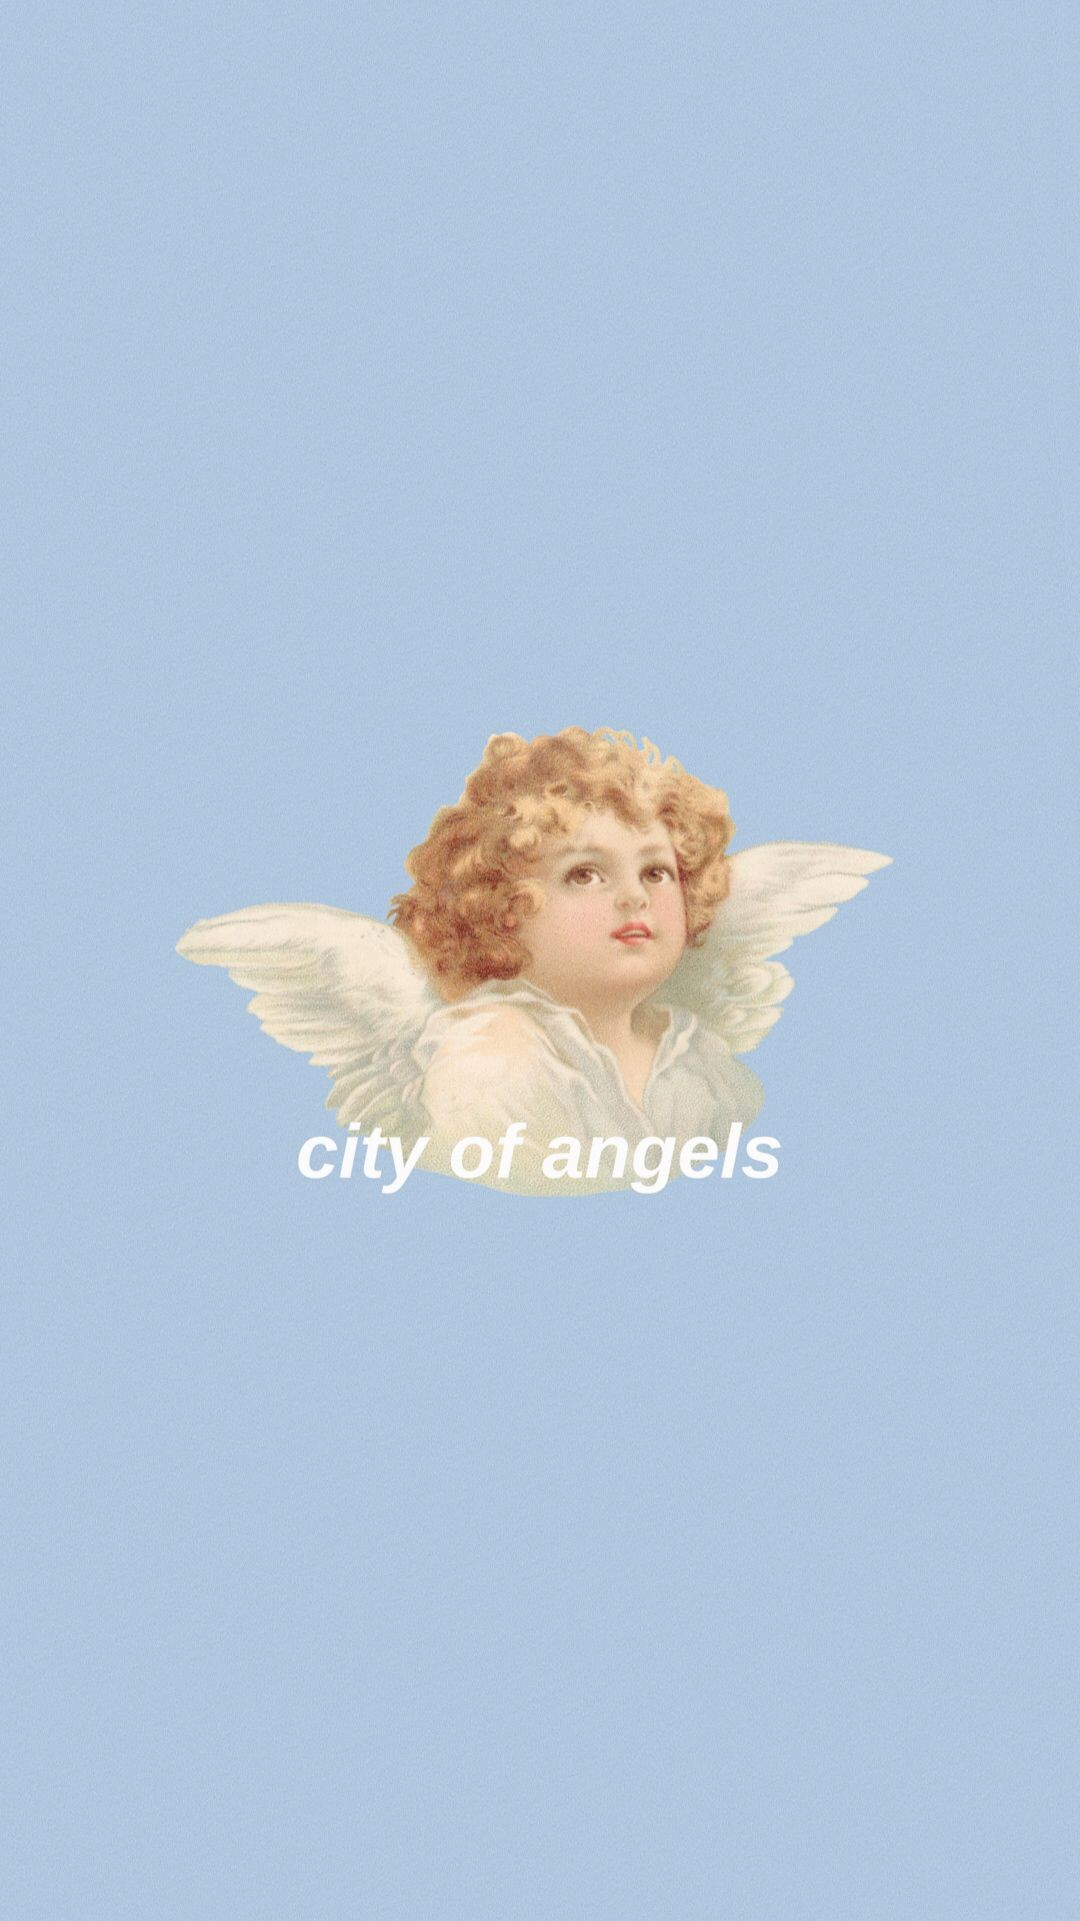 1080x1921 #angelwings #angel #cherub #aesthetic #aesthetictumblr  #aestheticallypleasing #iphonewallpaper #wallpaper #background #losangeles  #cityofangels #blue ...